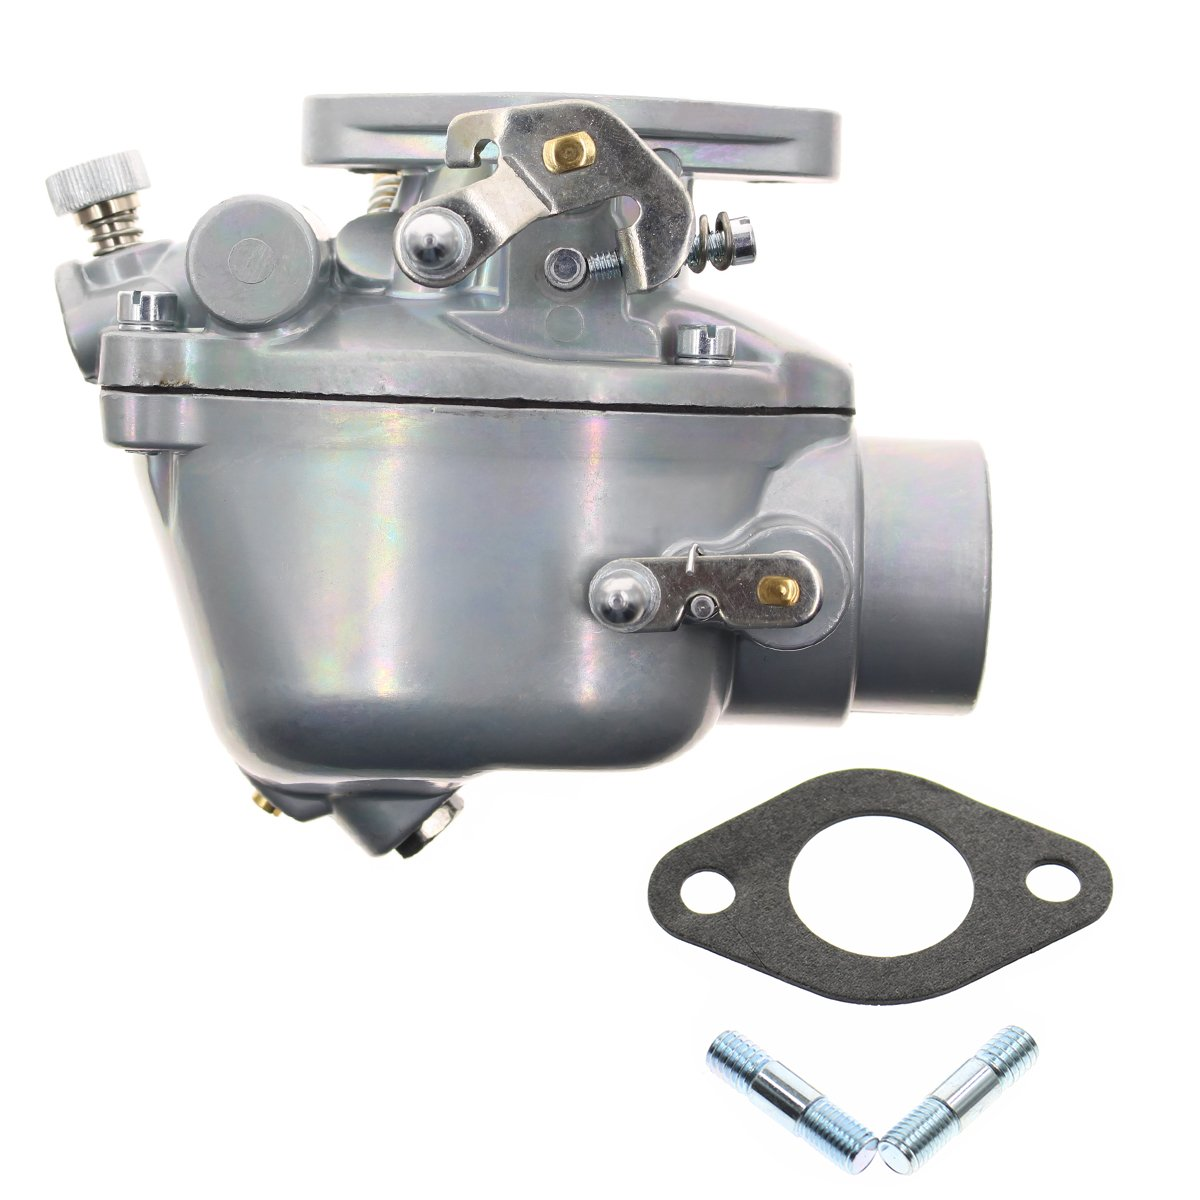 AUTOKAY 8N9510C-HD Marvel Schebler Carburetor for Ford Tractor 2N 8N 9N Heavy Duty TSX33odeal GooDeal